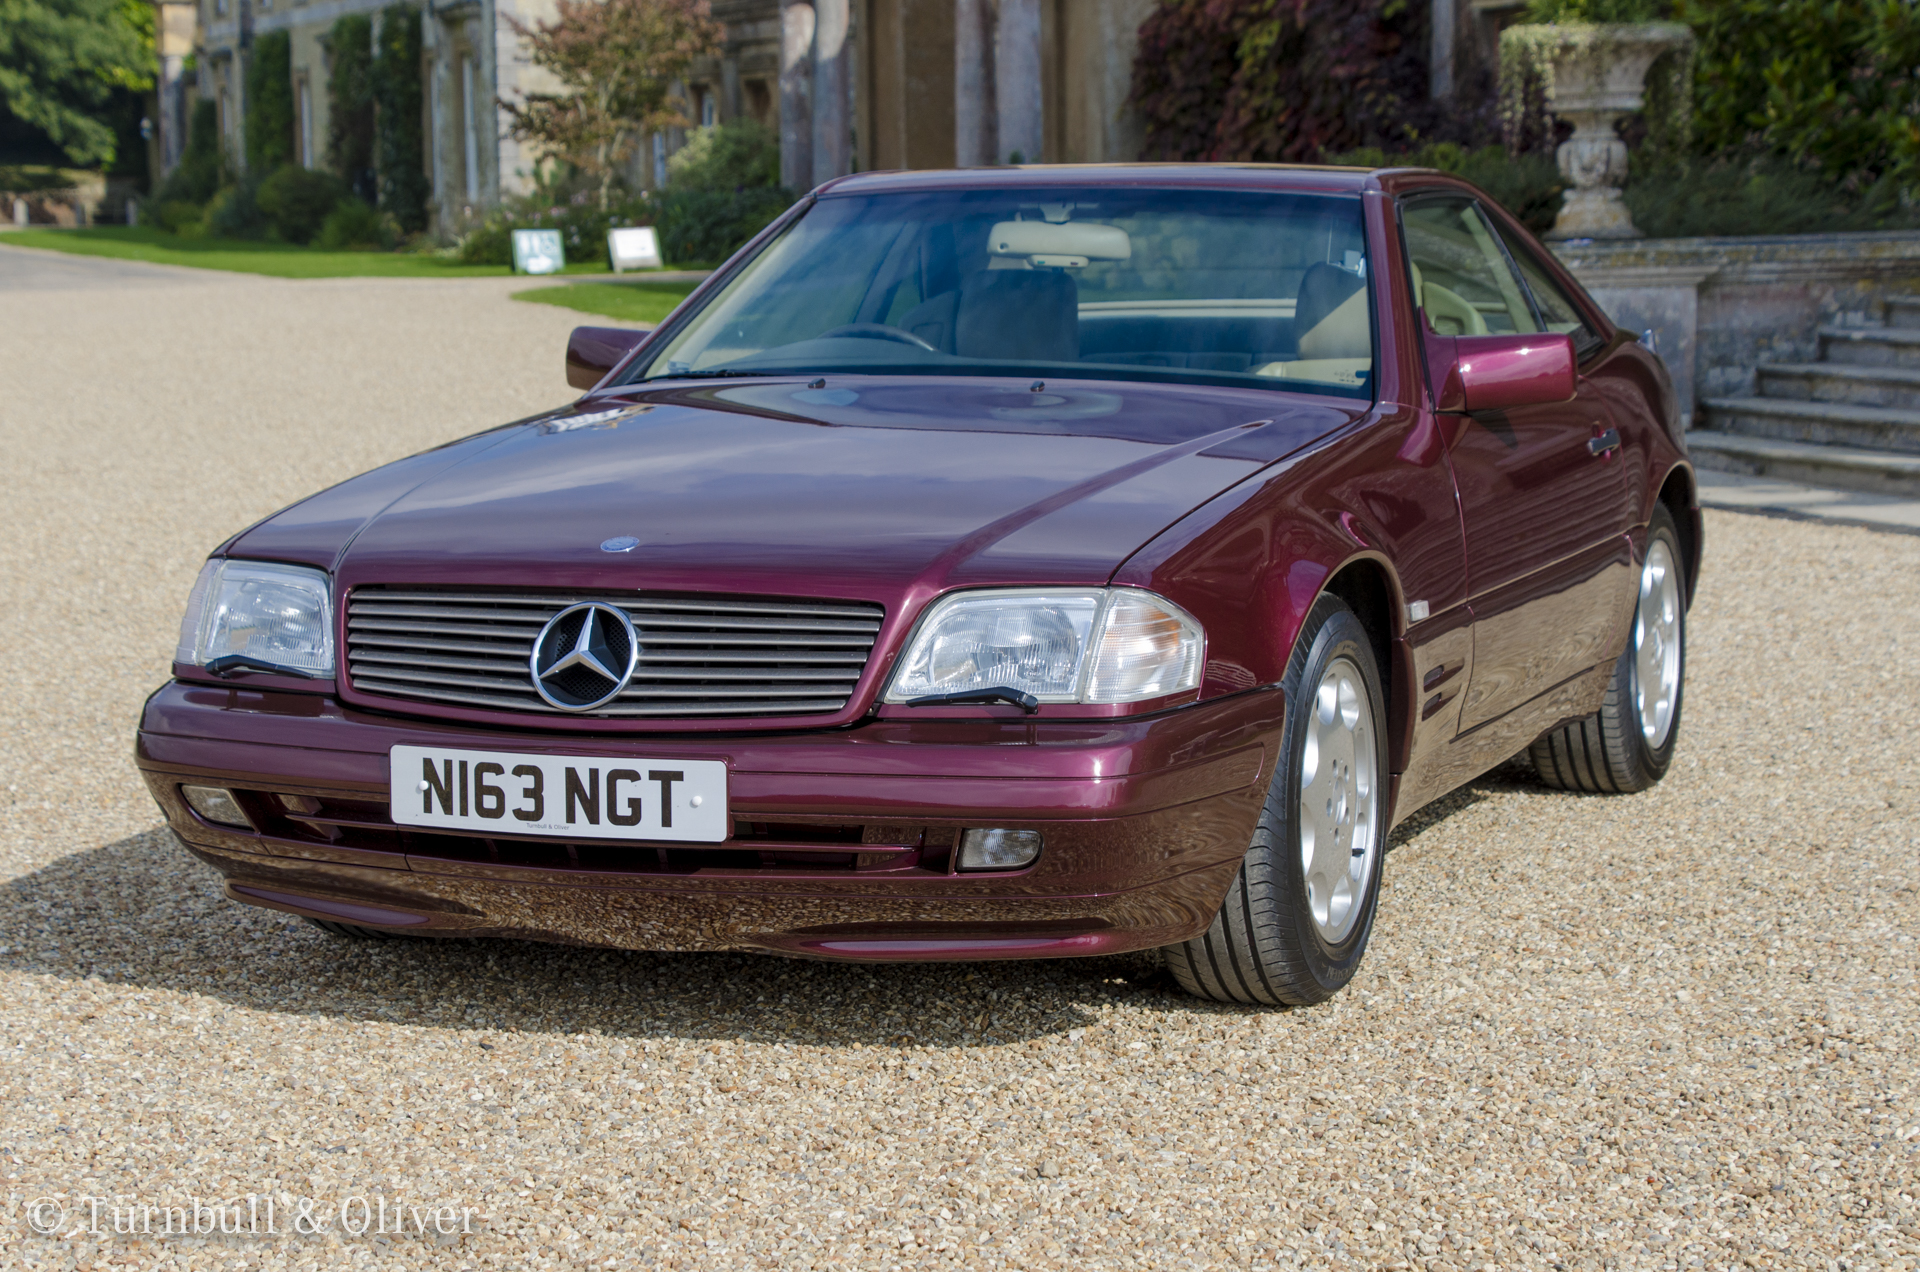 Mercedes Benz Sl320 Beautiful Burgundy Turnbull Oliver